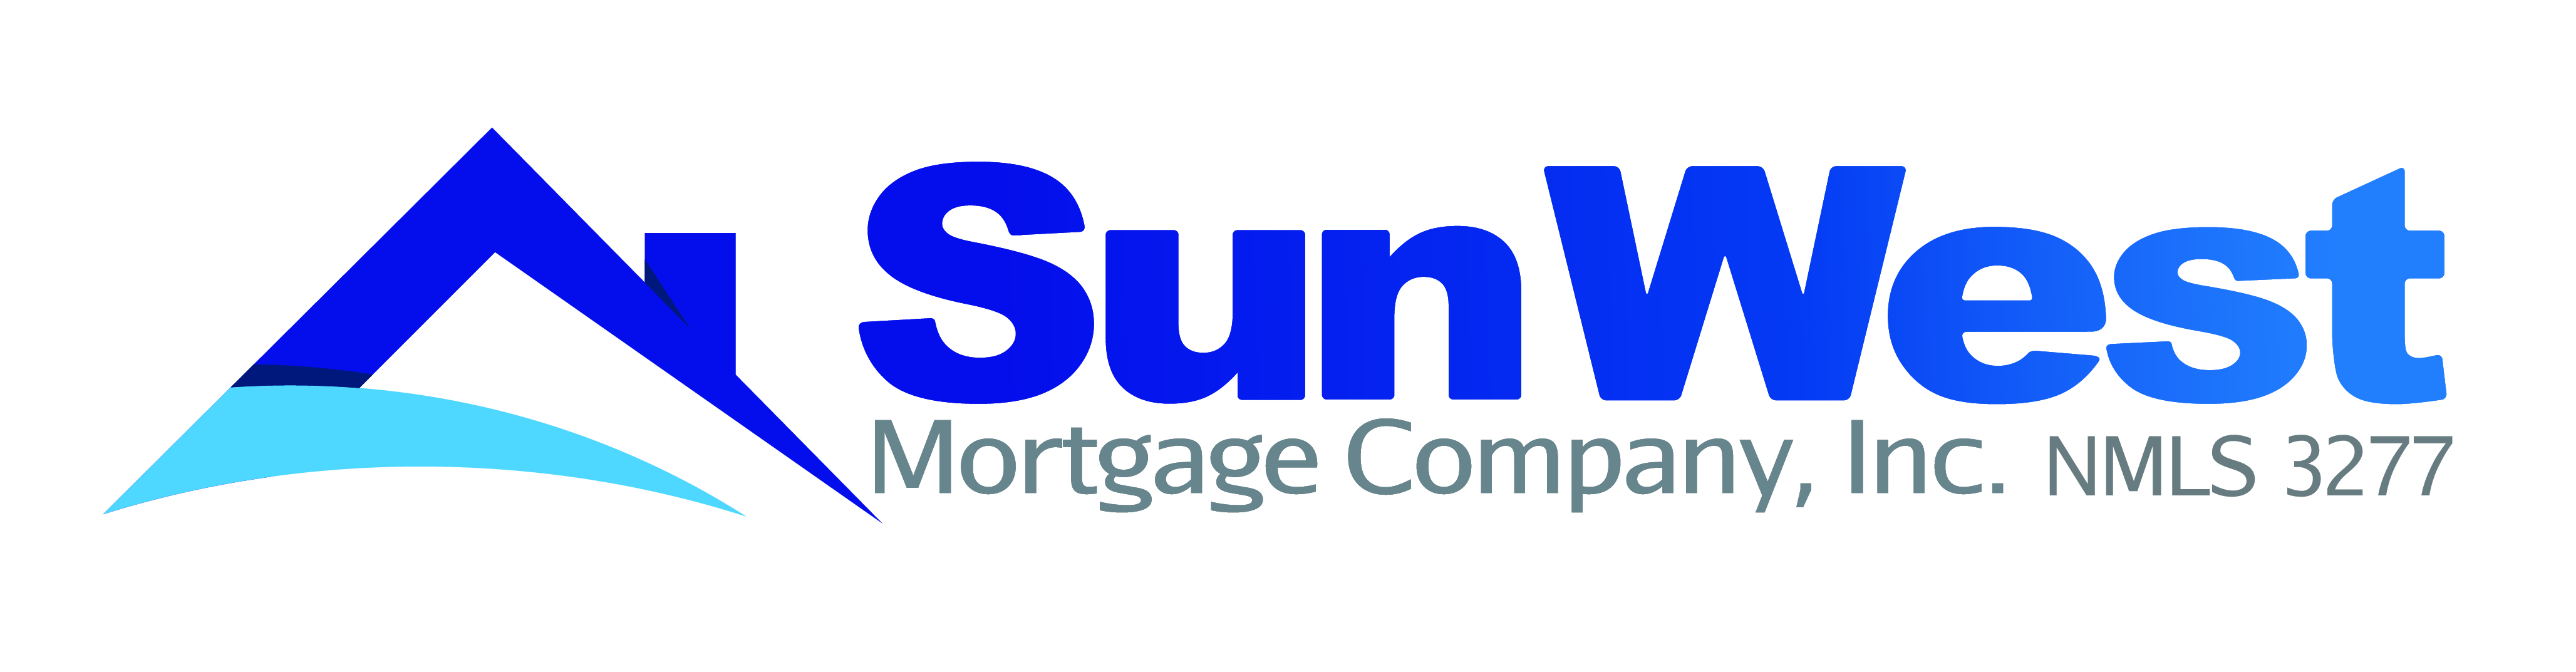 Sun West Mortgage Company, Inc. logo